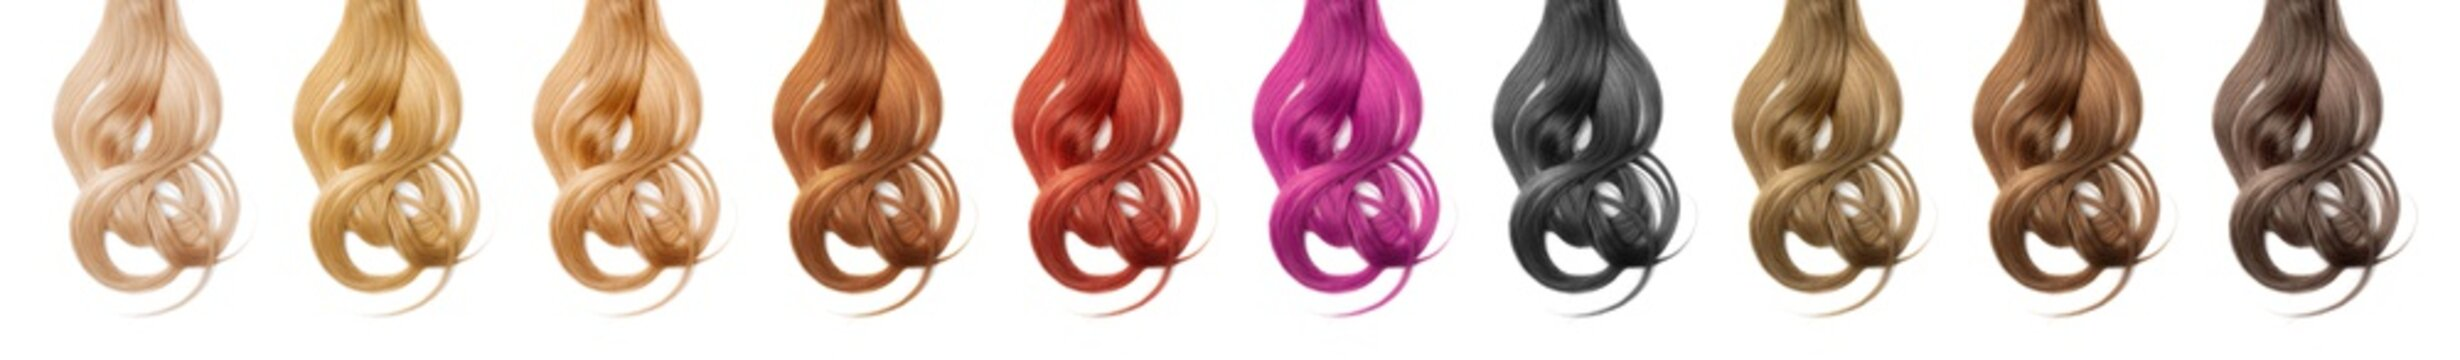 Collection various colors of wavy hair on white background